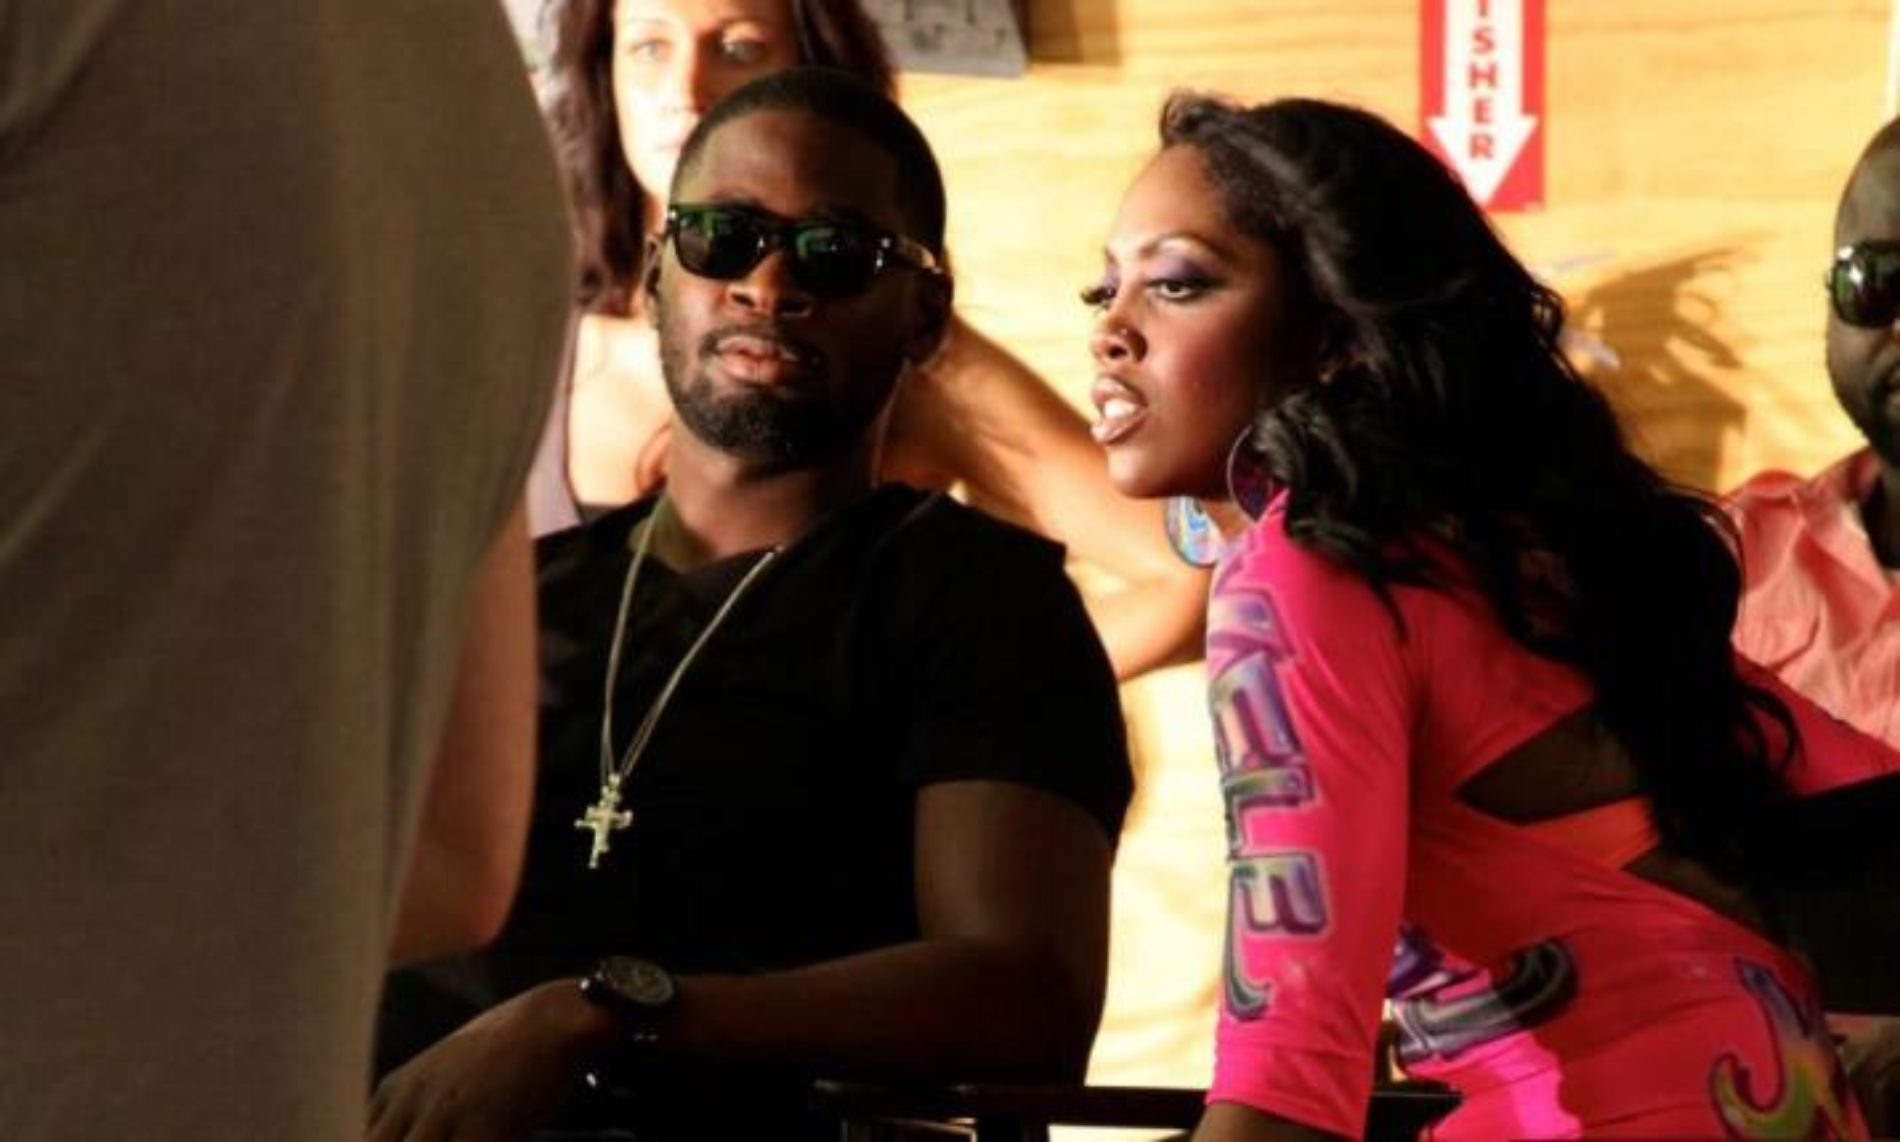 The PR Lessons To Take Away From The Tiwa Savage And Teebillz Story